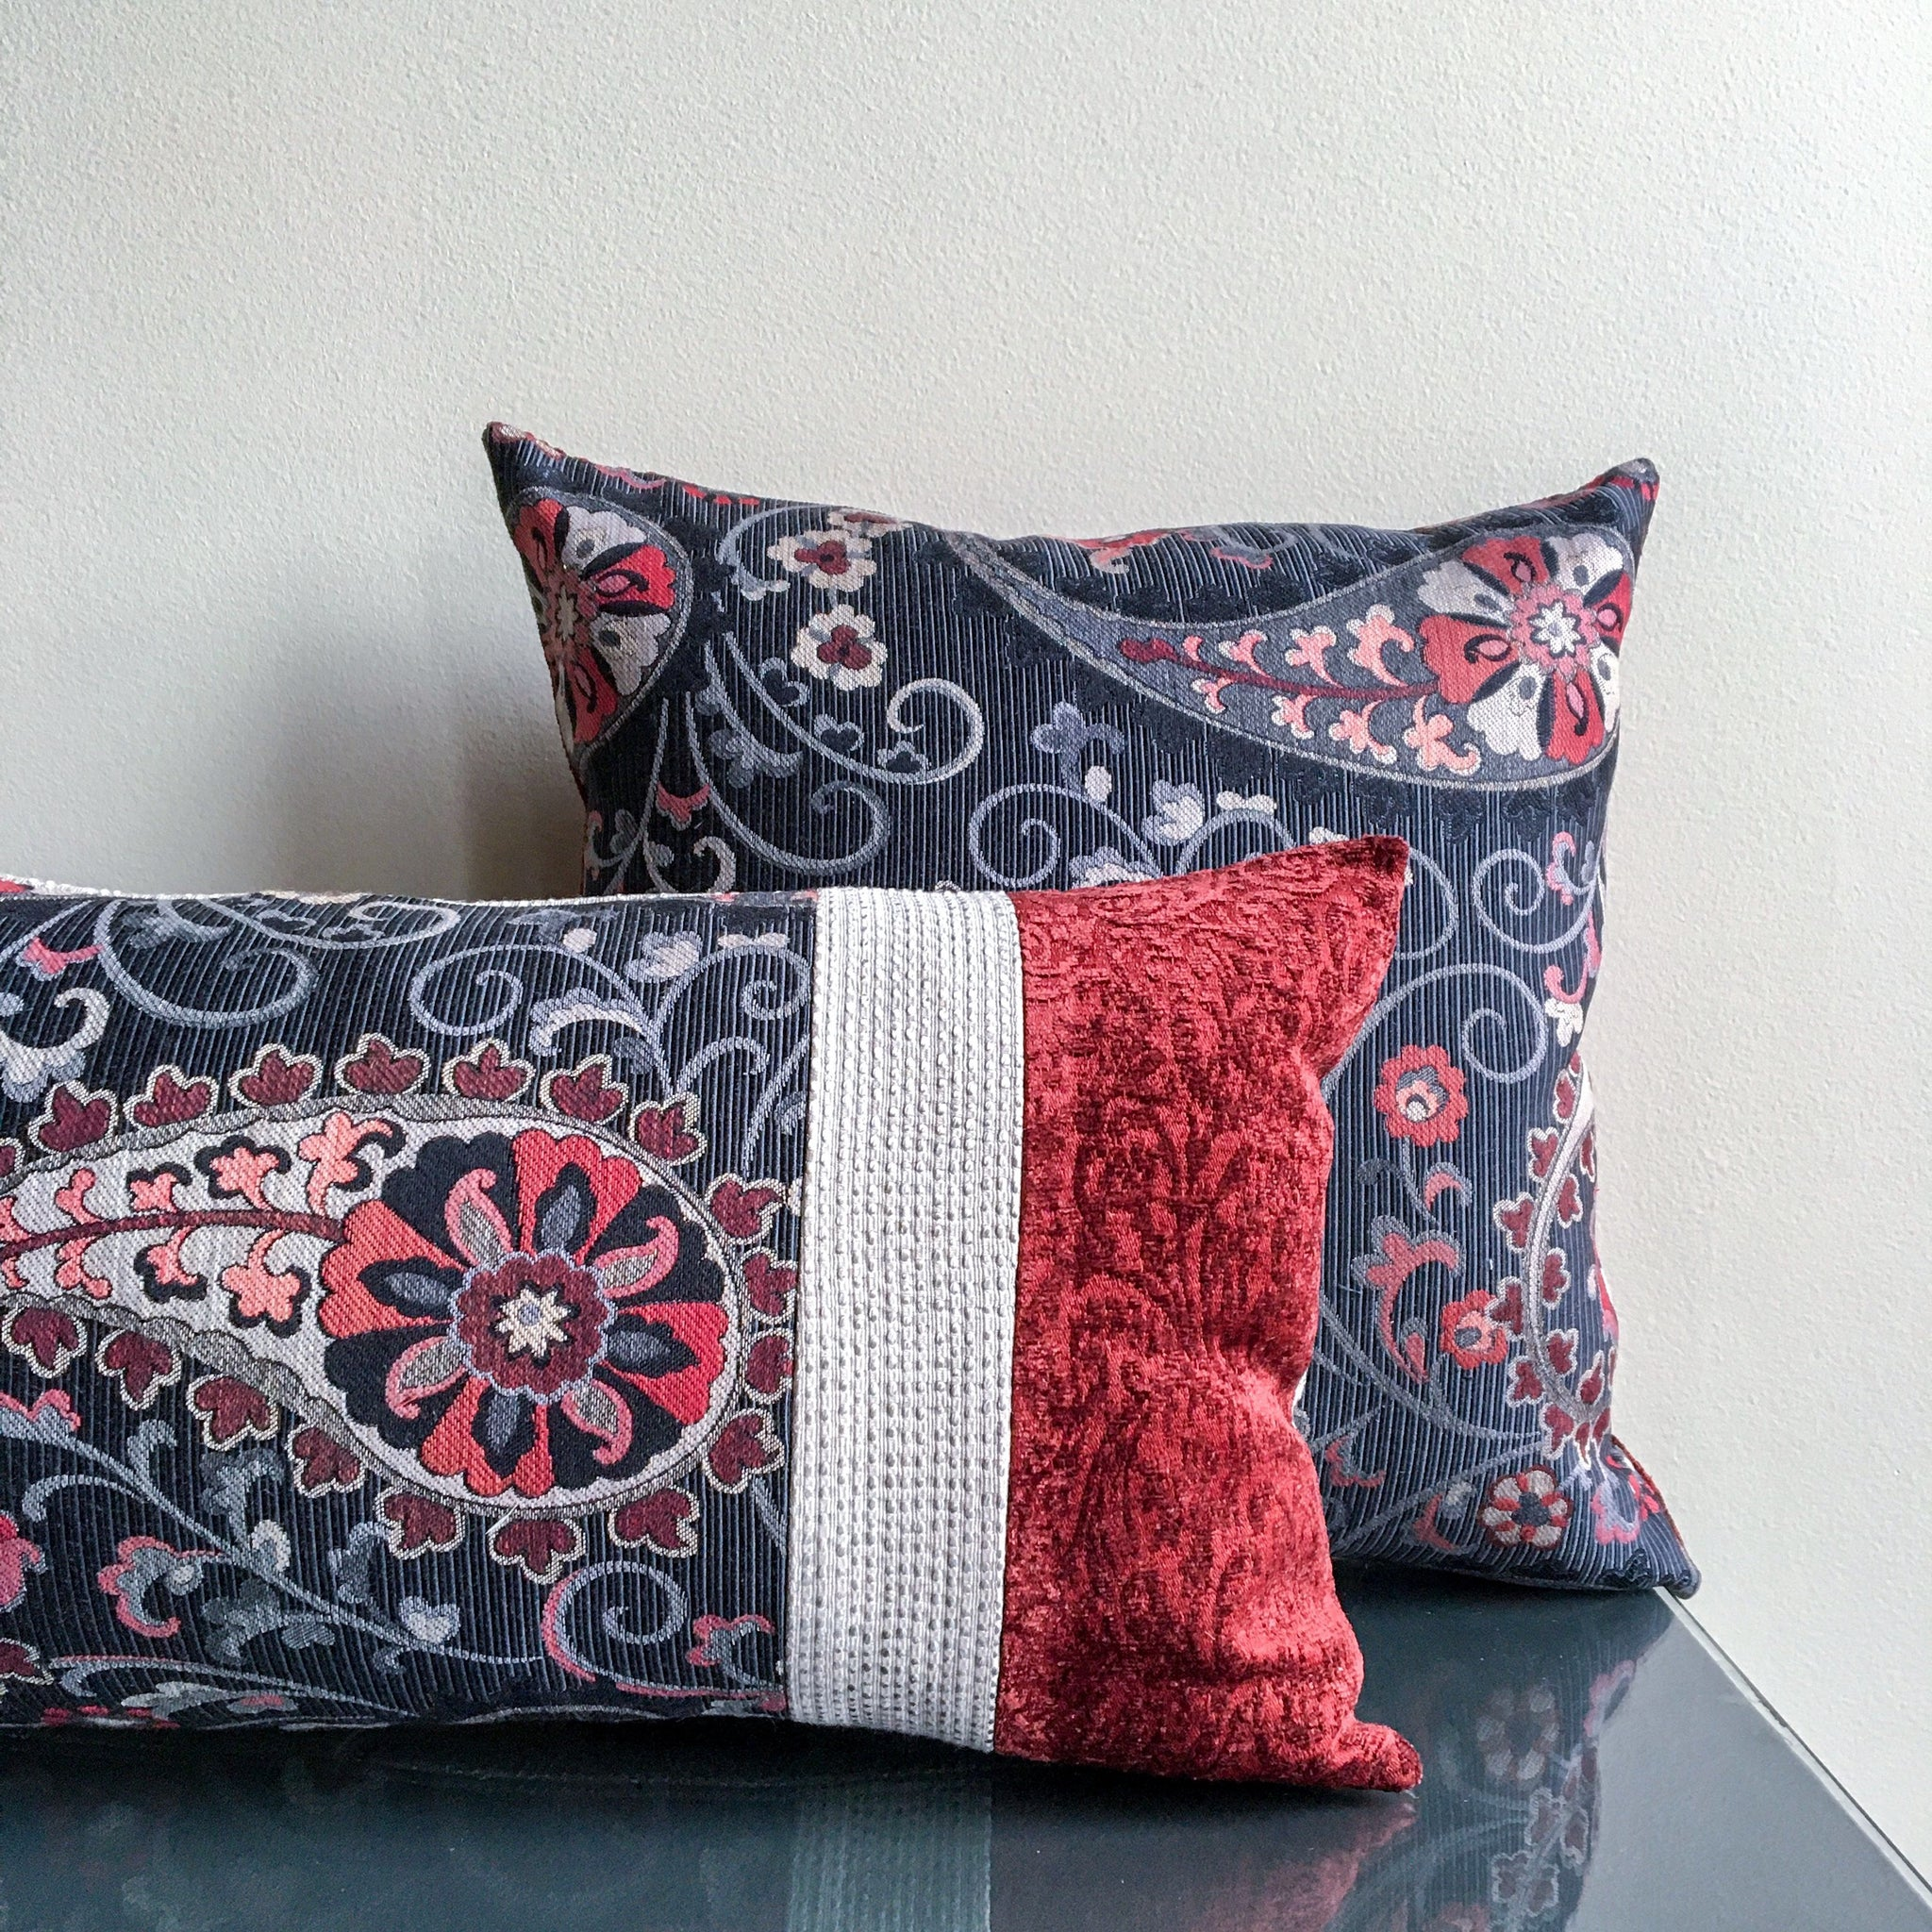 18x18 Navy Blue, Red, Silver Paisley Throw Pillow Covers | Reversible | Bold Patterned Pillows | Handmade